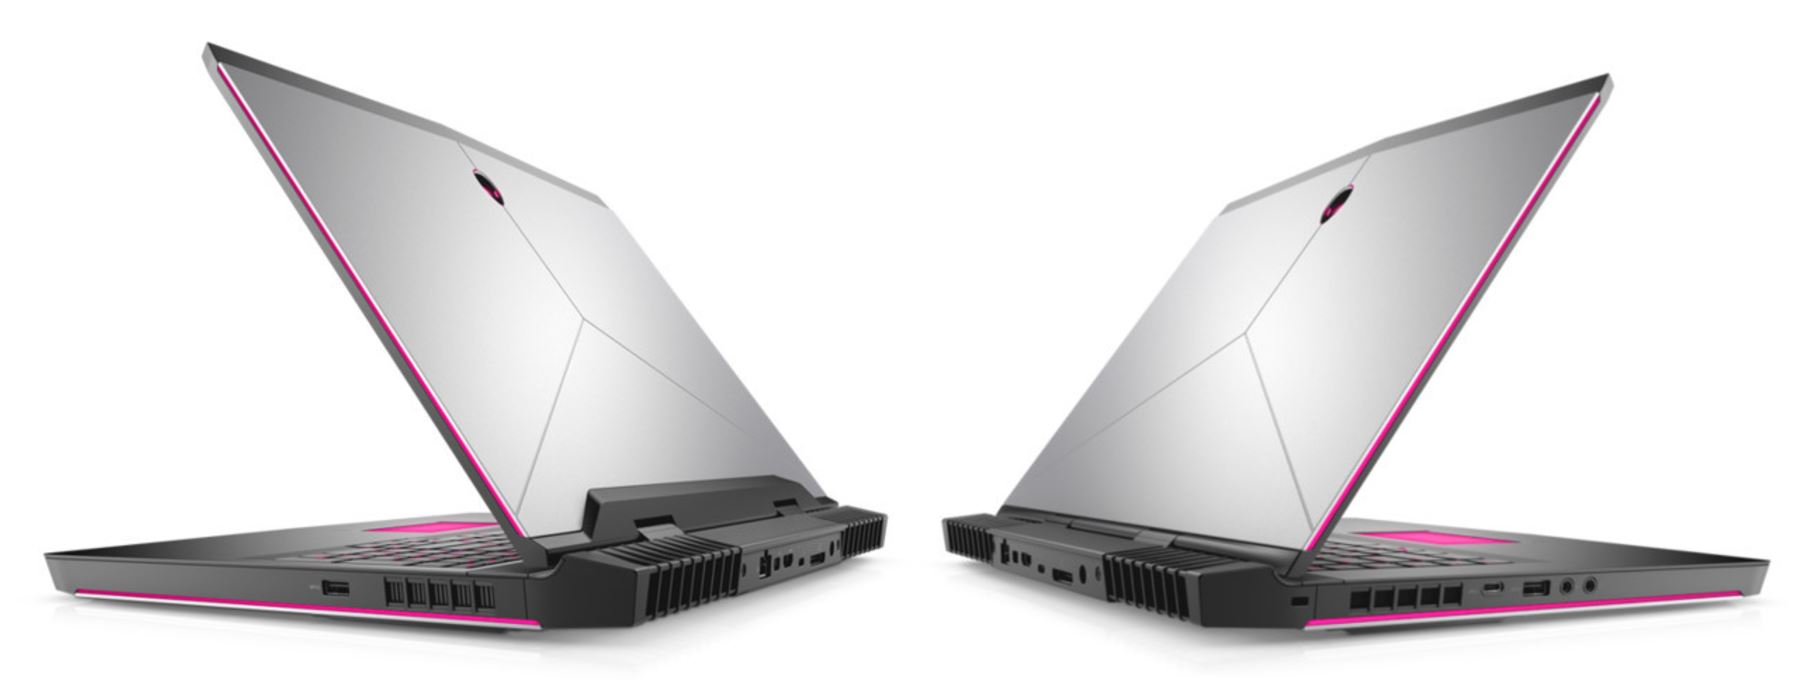 Dell] Alienware 15 R3, 17 R4 รุ่นใหม่ Core i7 Gen 7 Kaby